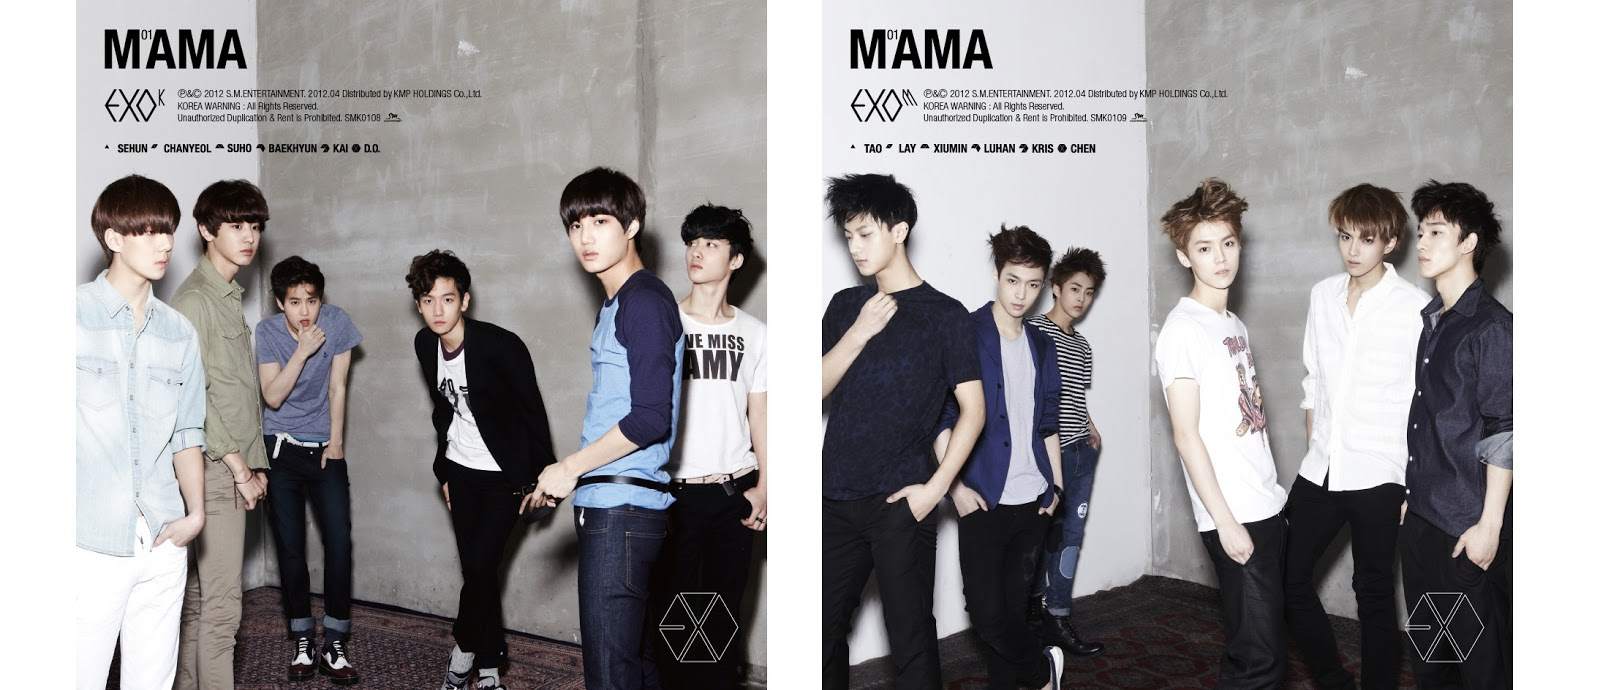 k poppo exo k m mama full album download. Black Bedroom Furniture Sets. Home Design Ideas